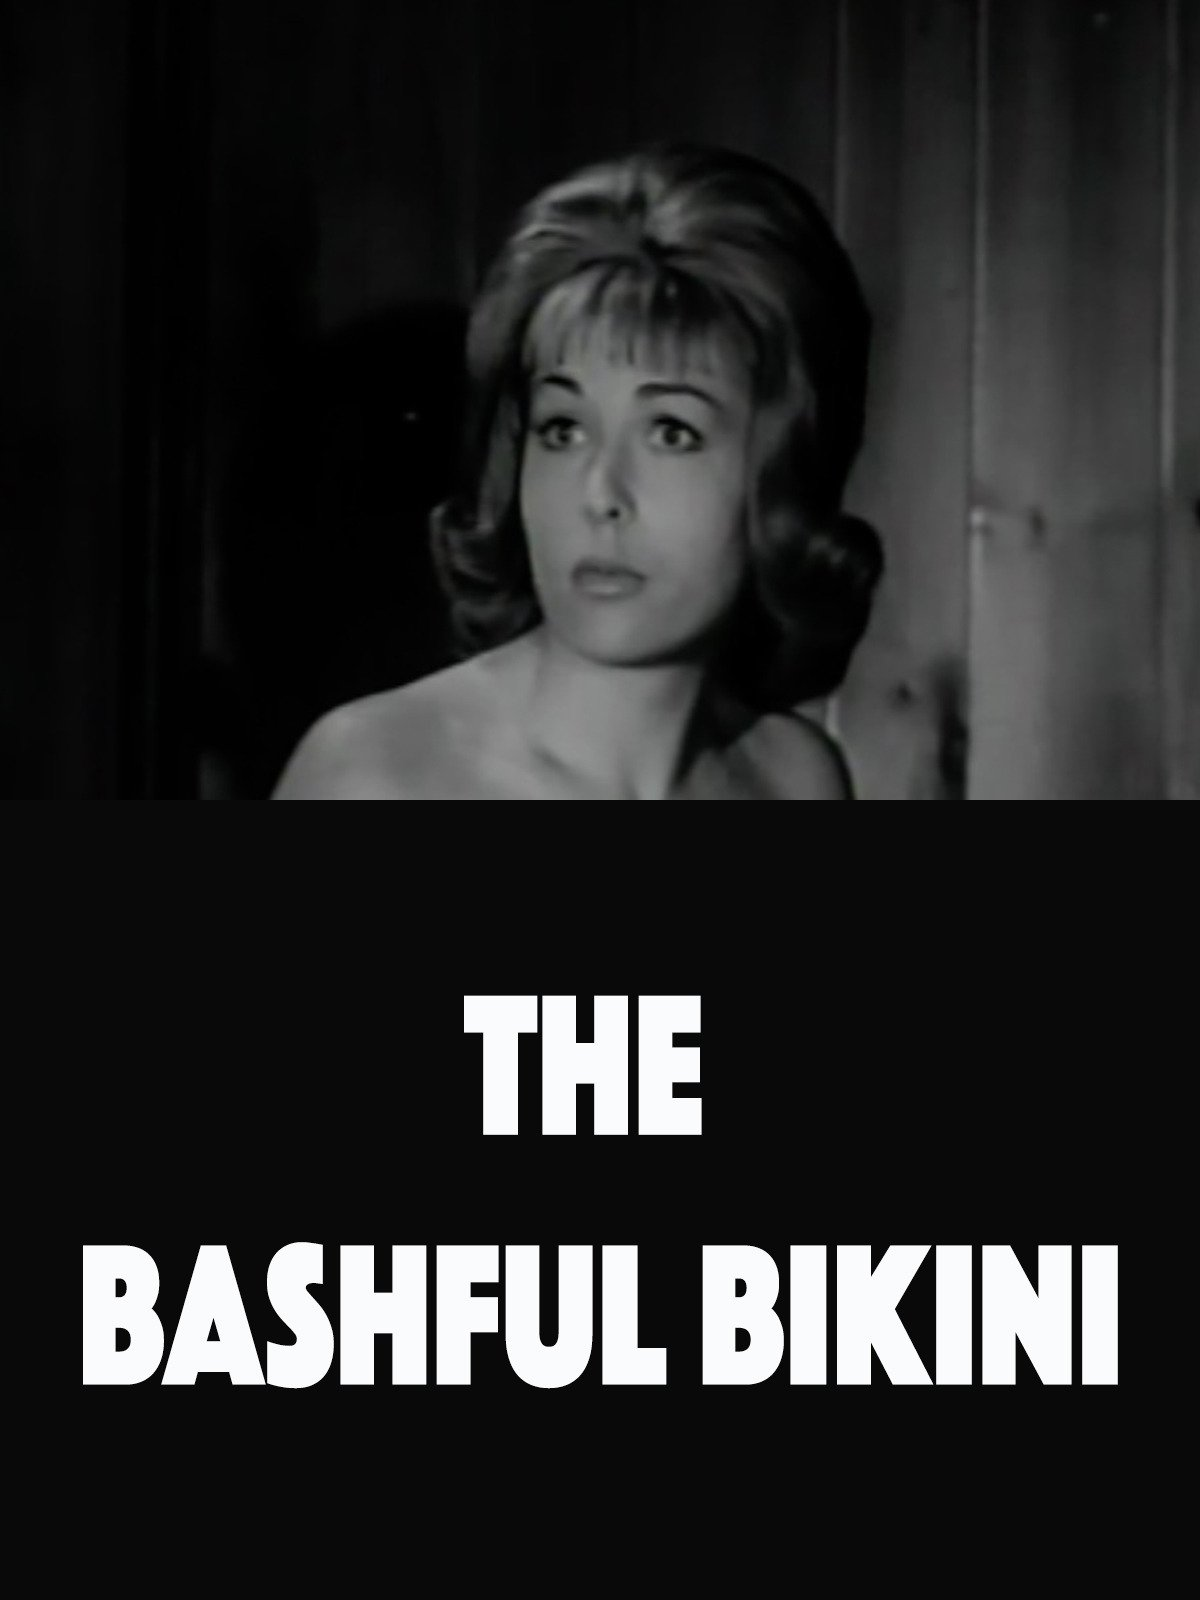 The Bashful Bikini